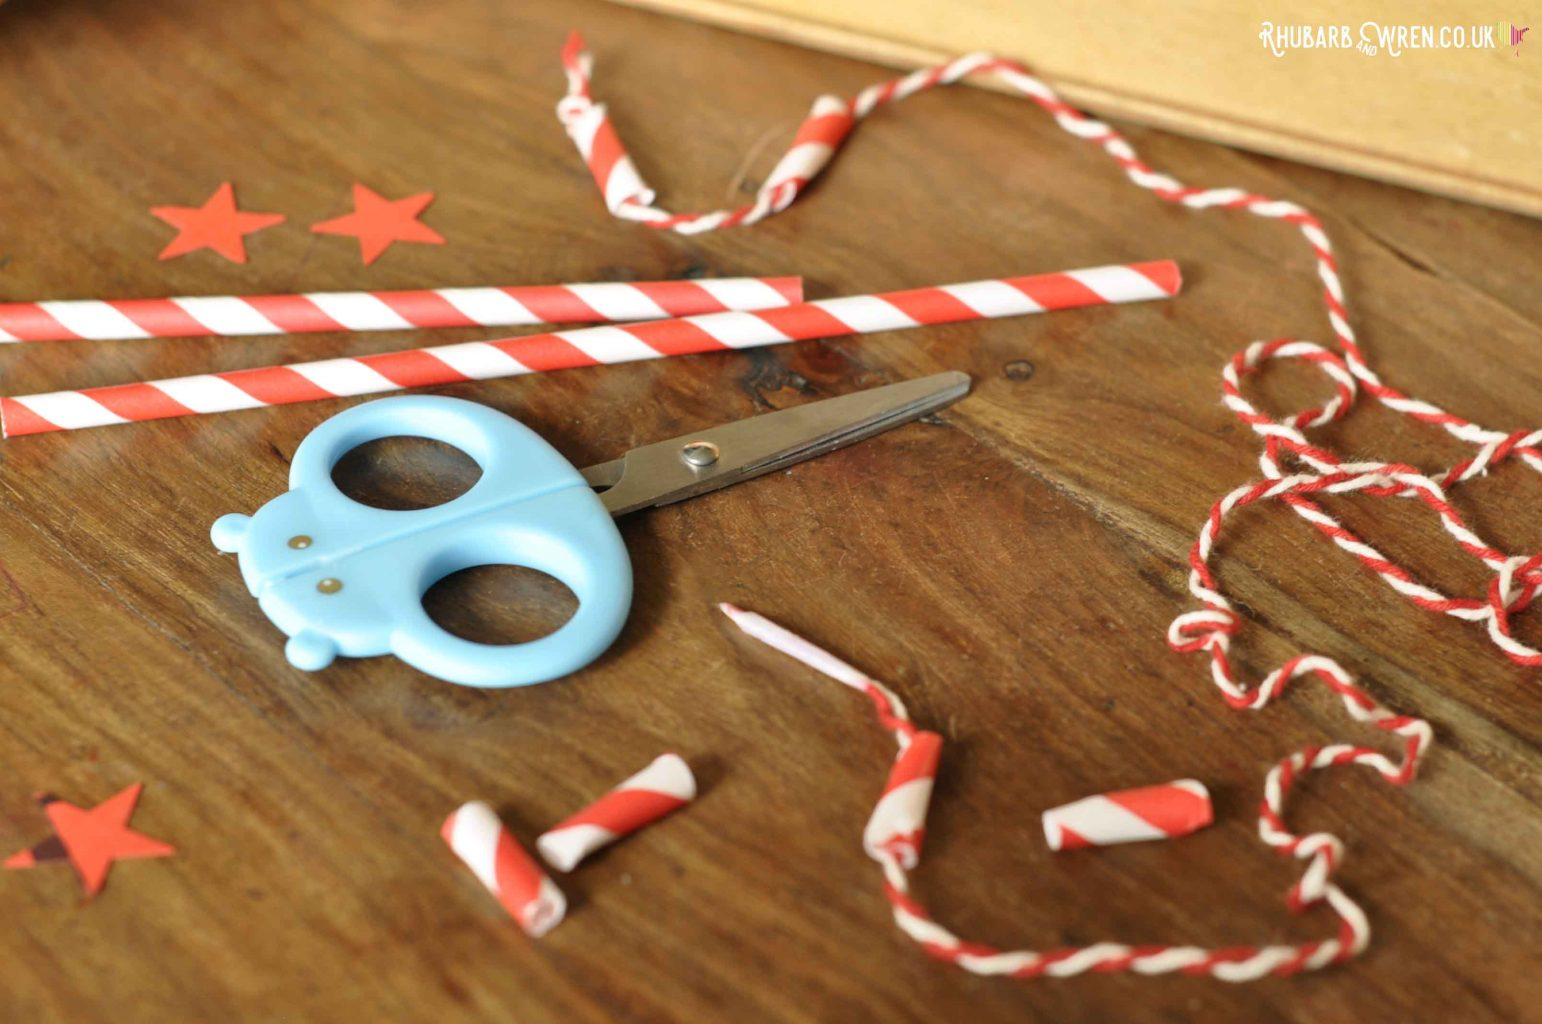 Scissors, paper straws, sections of straw and string for threading